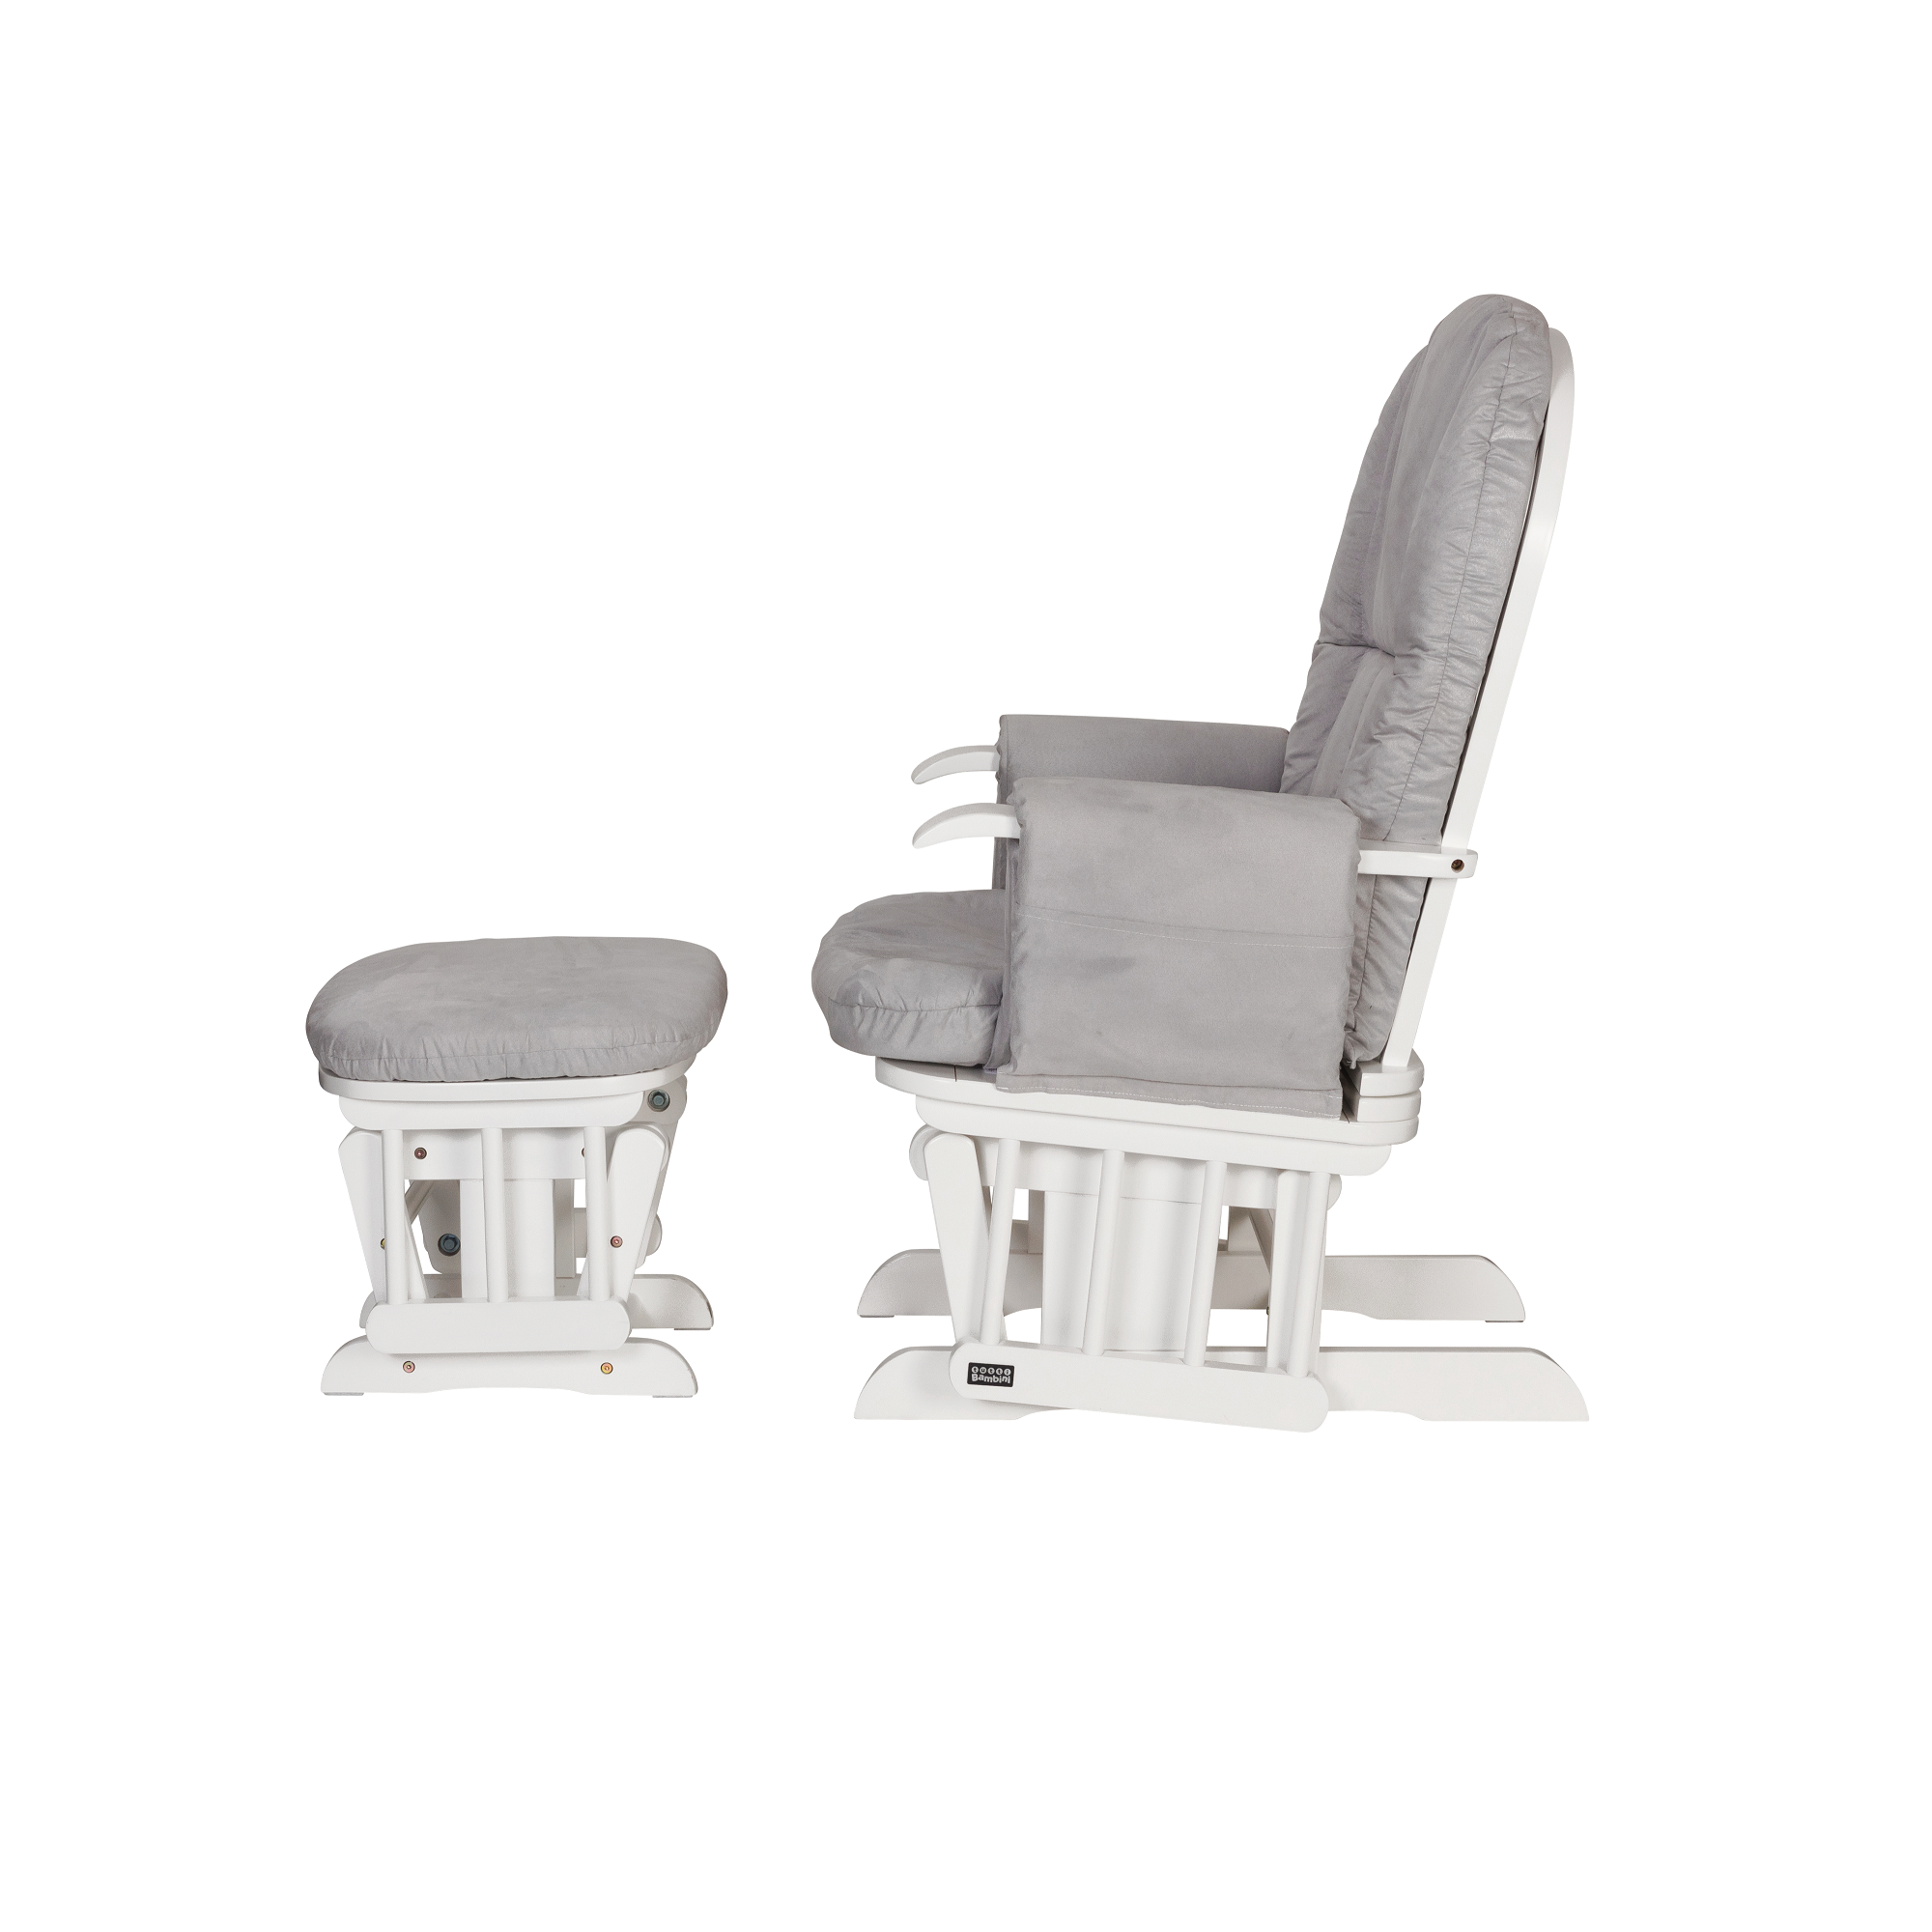 Tutti Bambini Gc35 Reclining Glider Chair Stool White With Grey Cushions